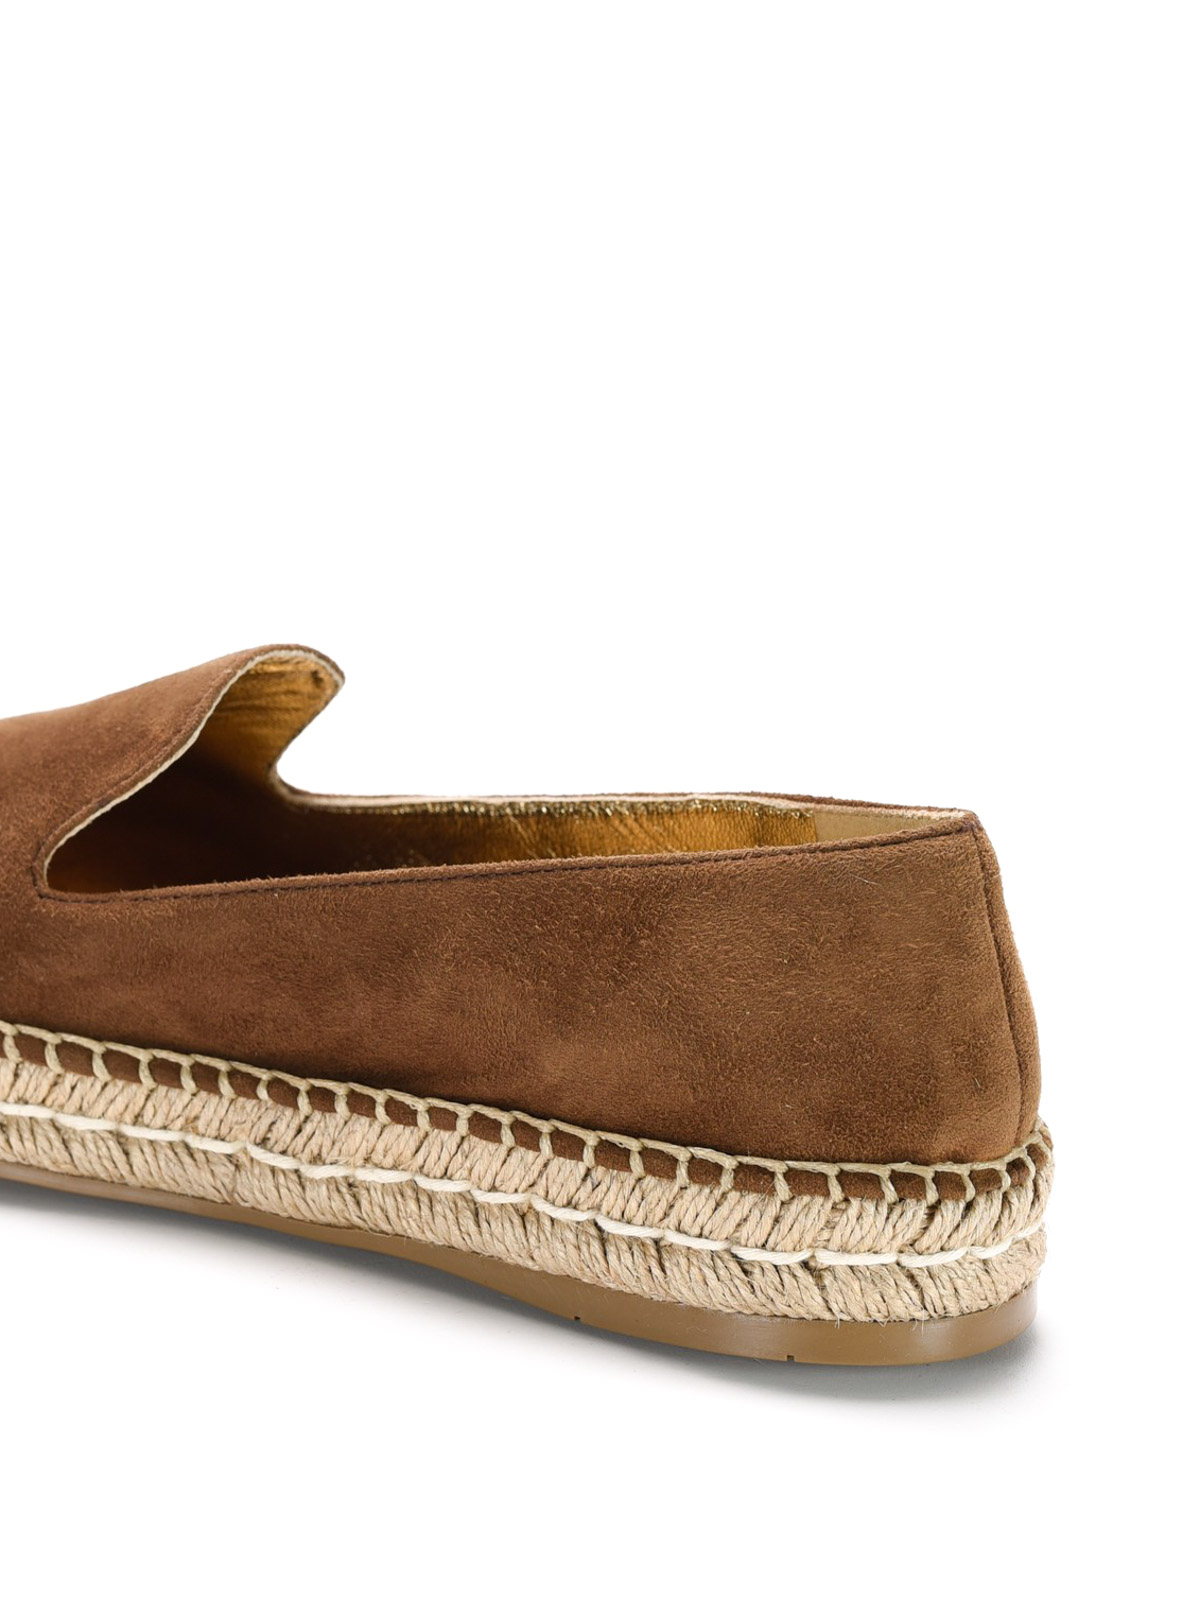 Made in Spain, this brand is famous for making gorgeous Spanish espadrilles! Gaimo combines fashion with traditional handcrafting to create essential summer footwear.